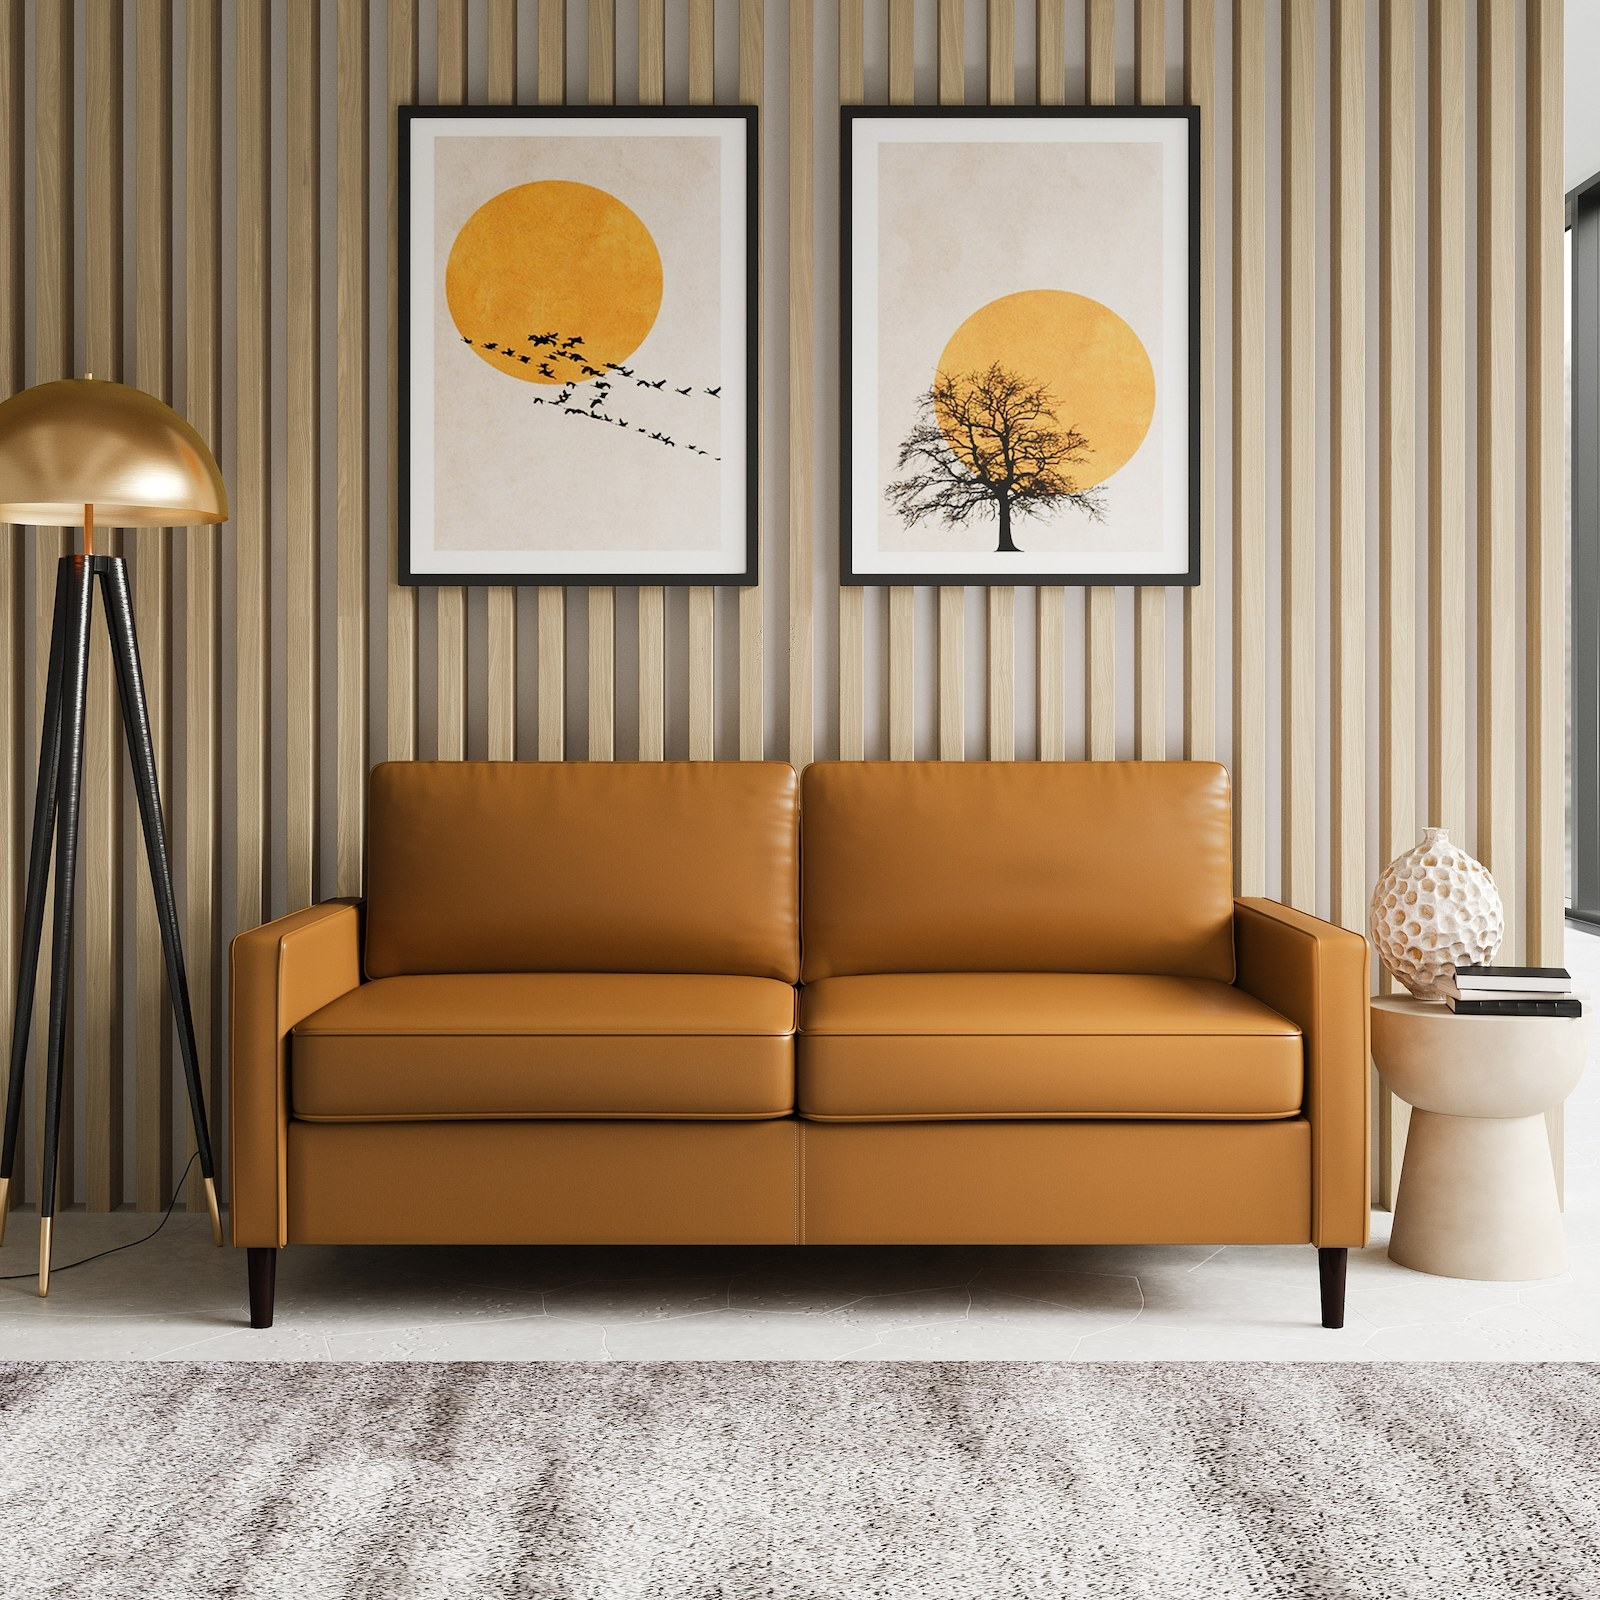 The camel-colored couch with two cushions and piping on each one